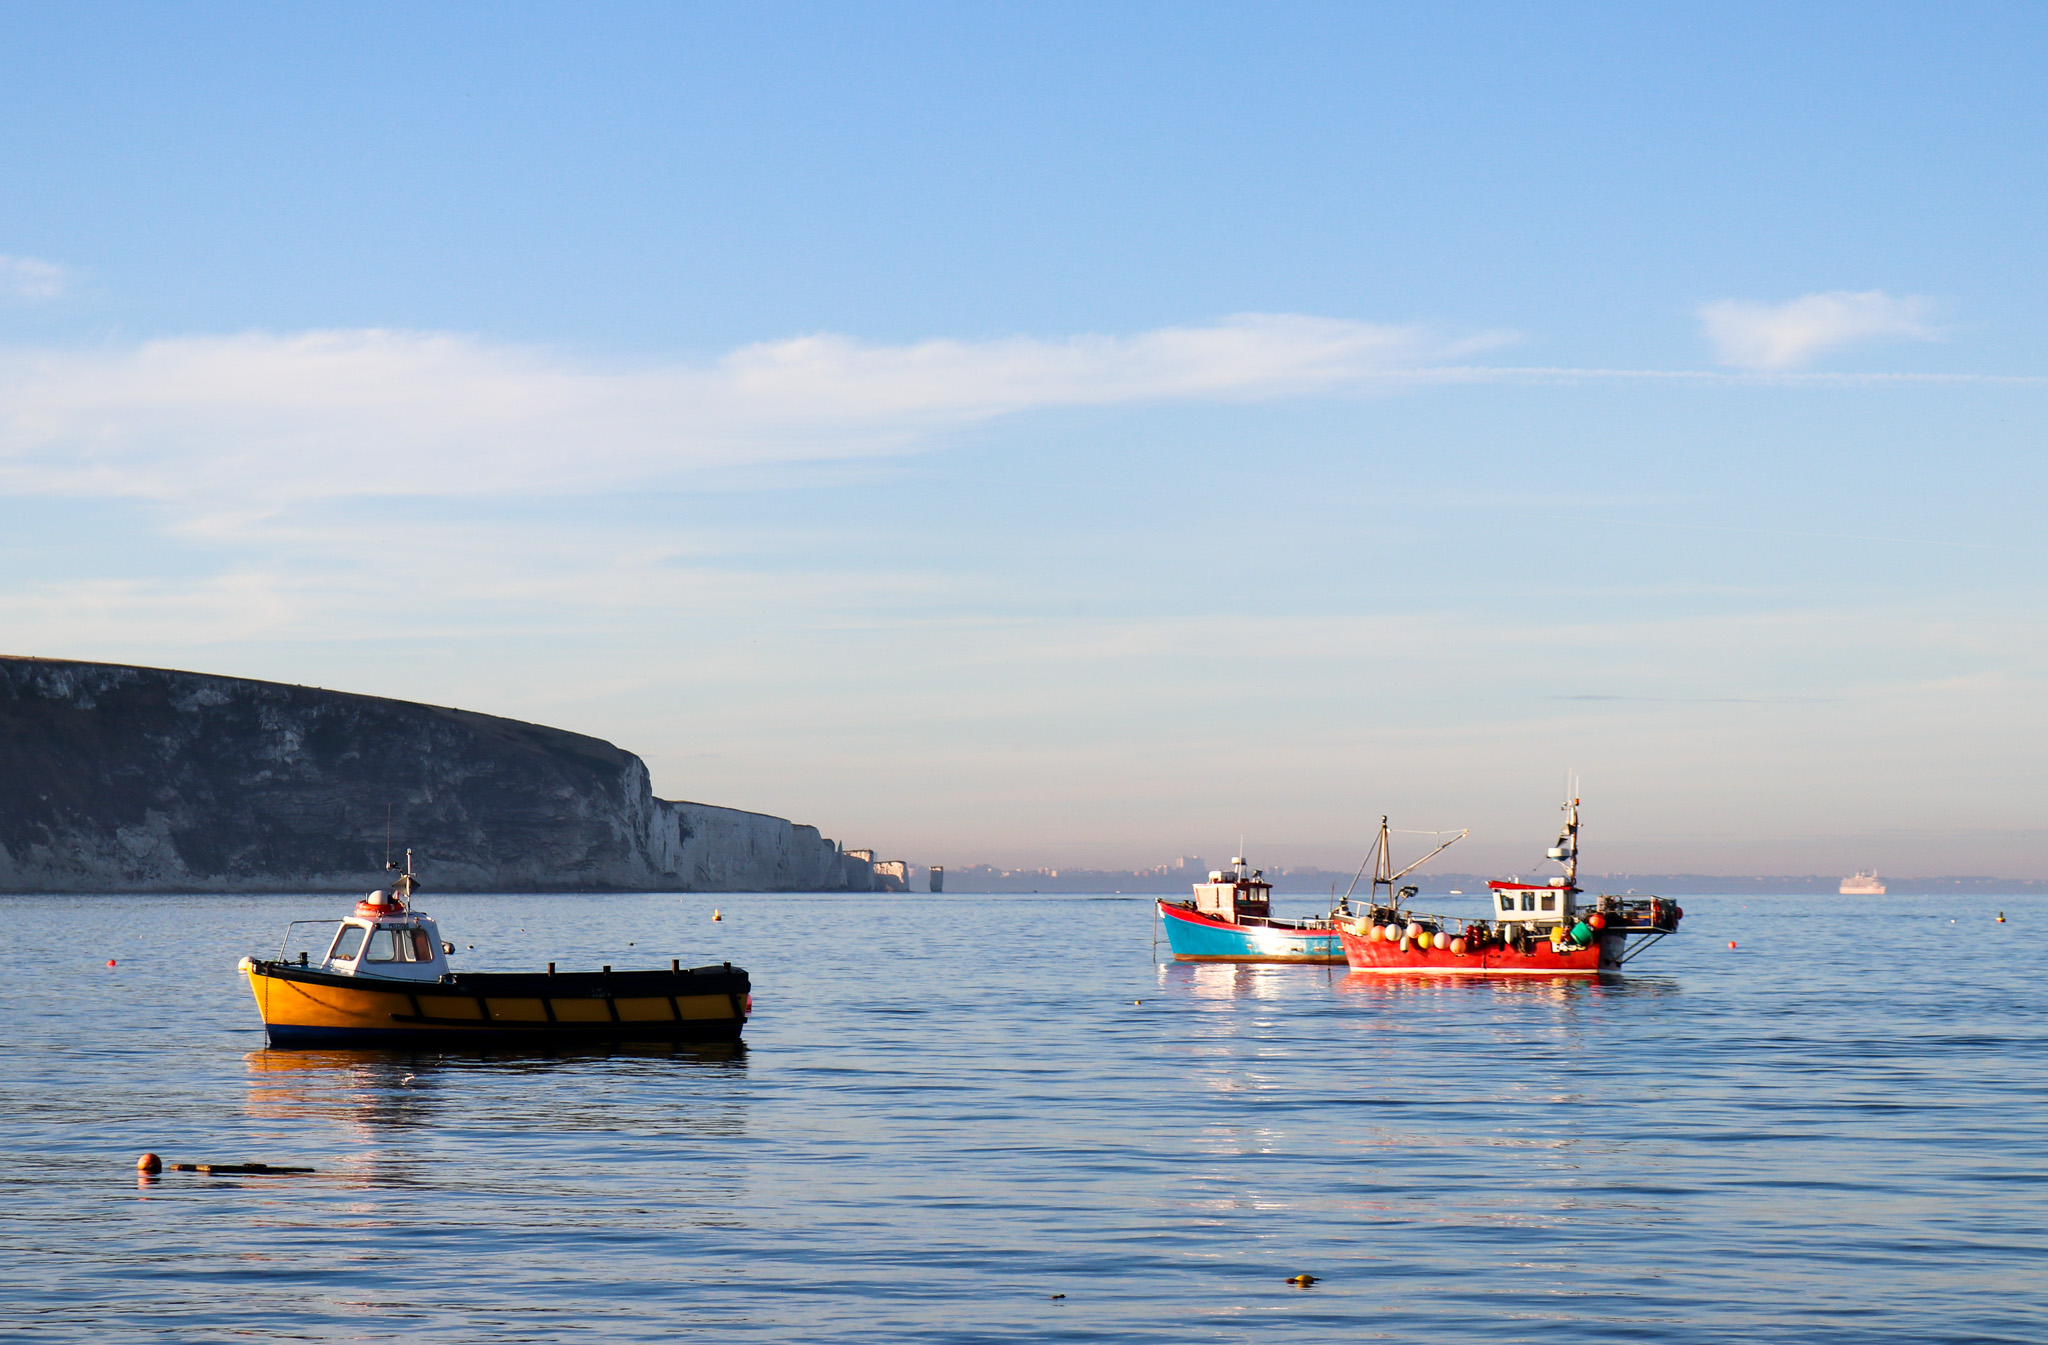 Fishing boats in Swanage Bay